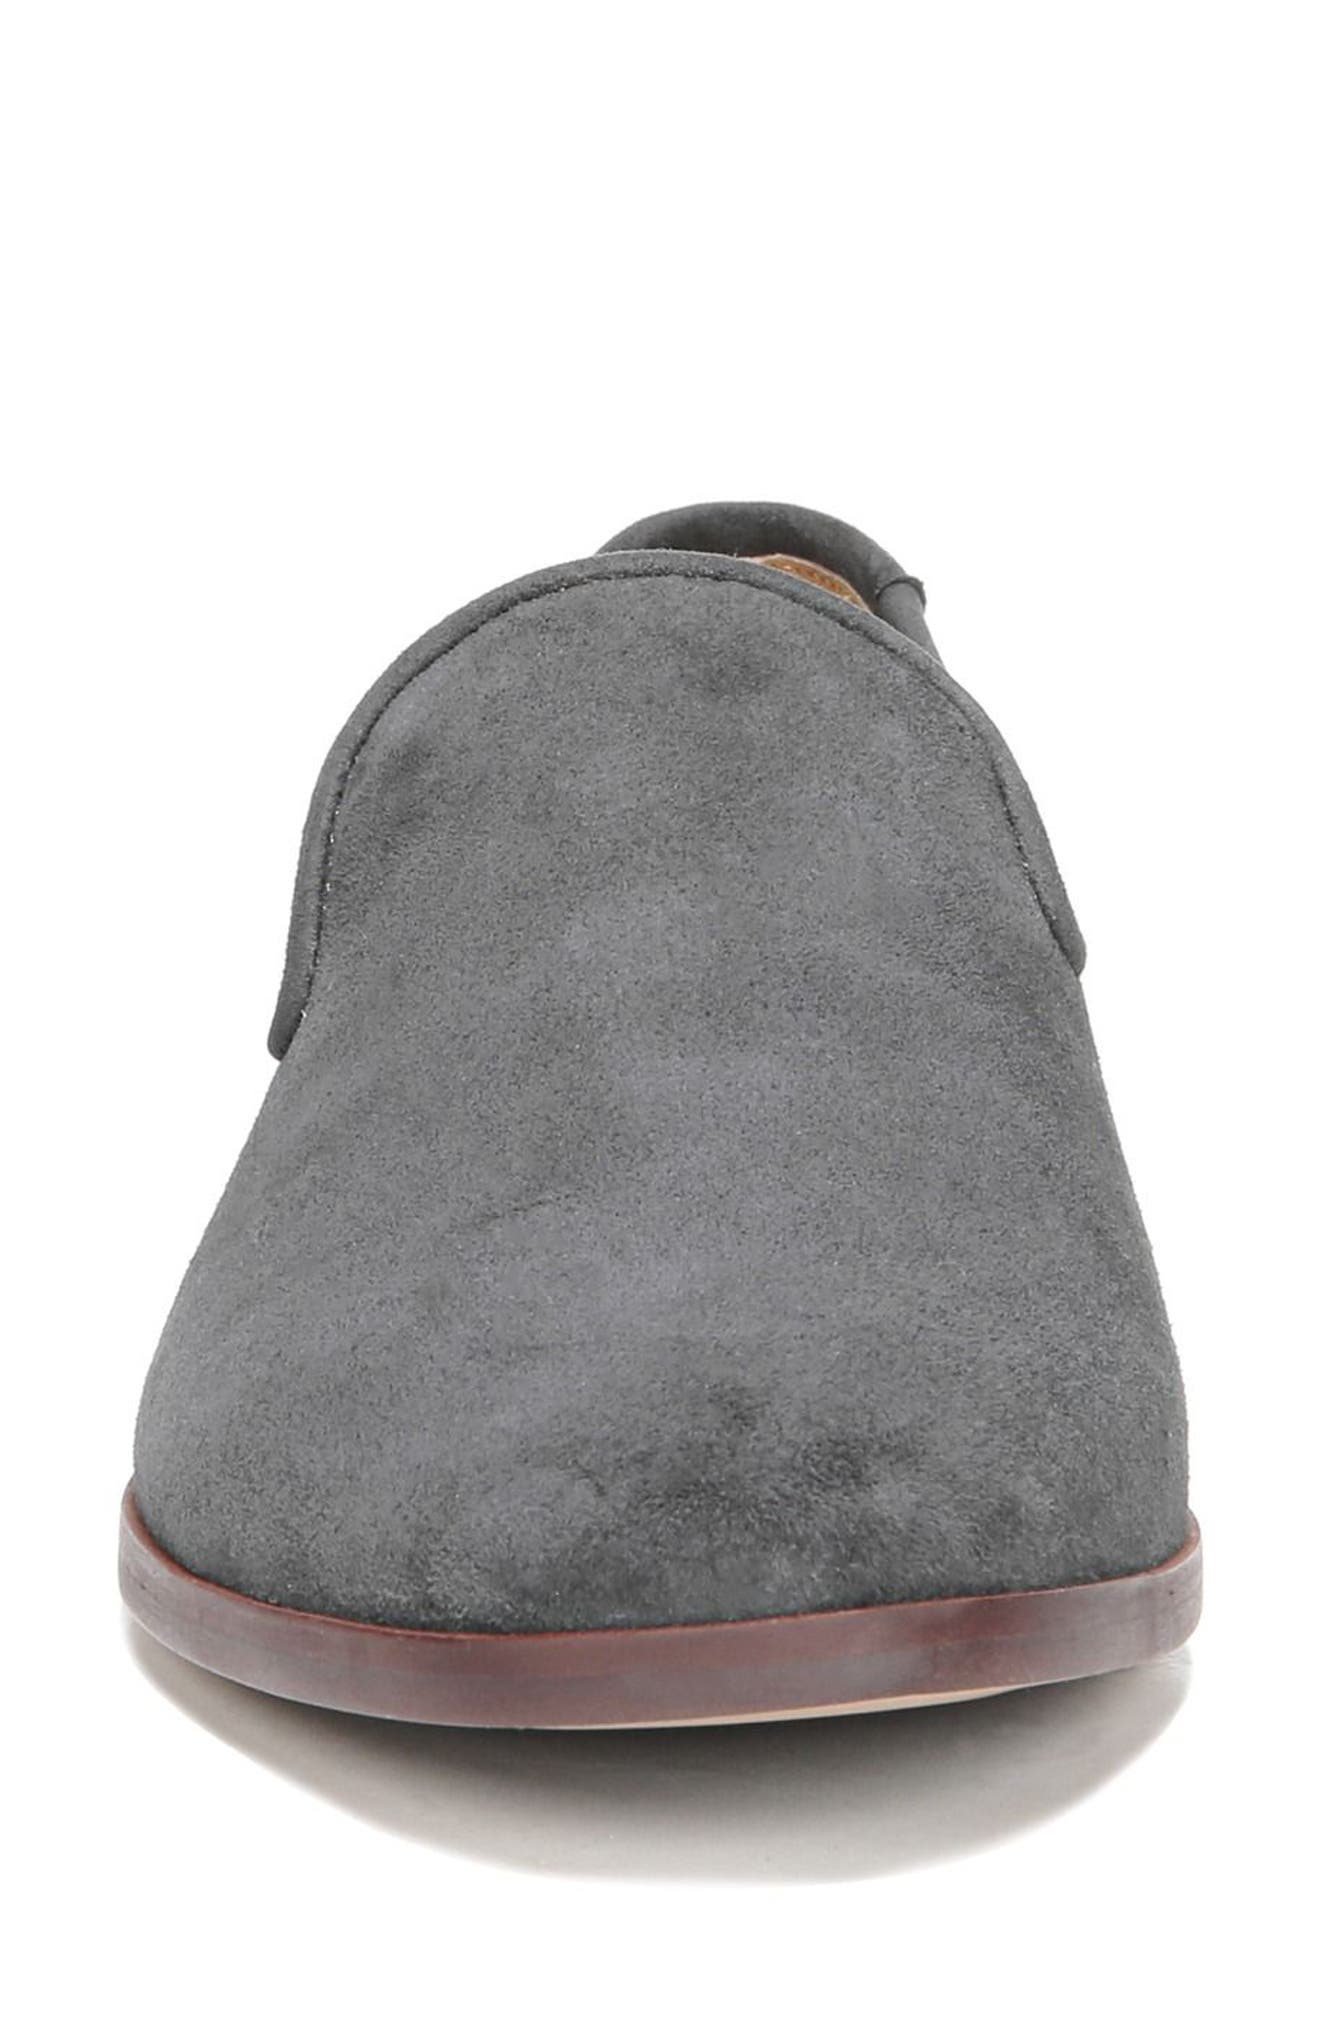 Ayers Loafer Flat,                             Alternate thumbnail 32, color,